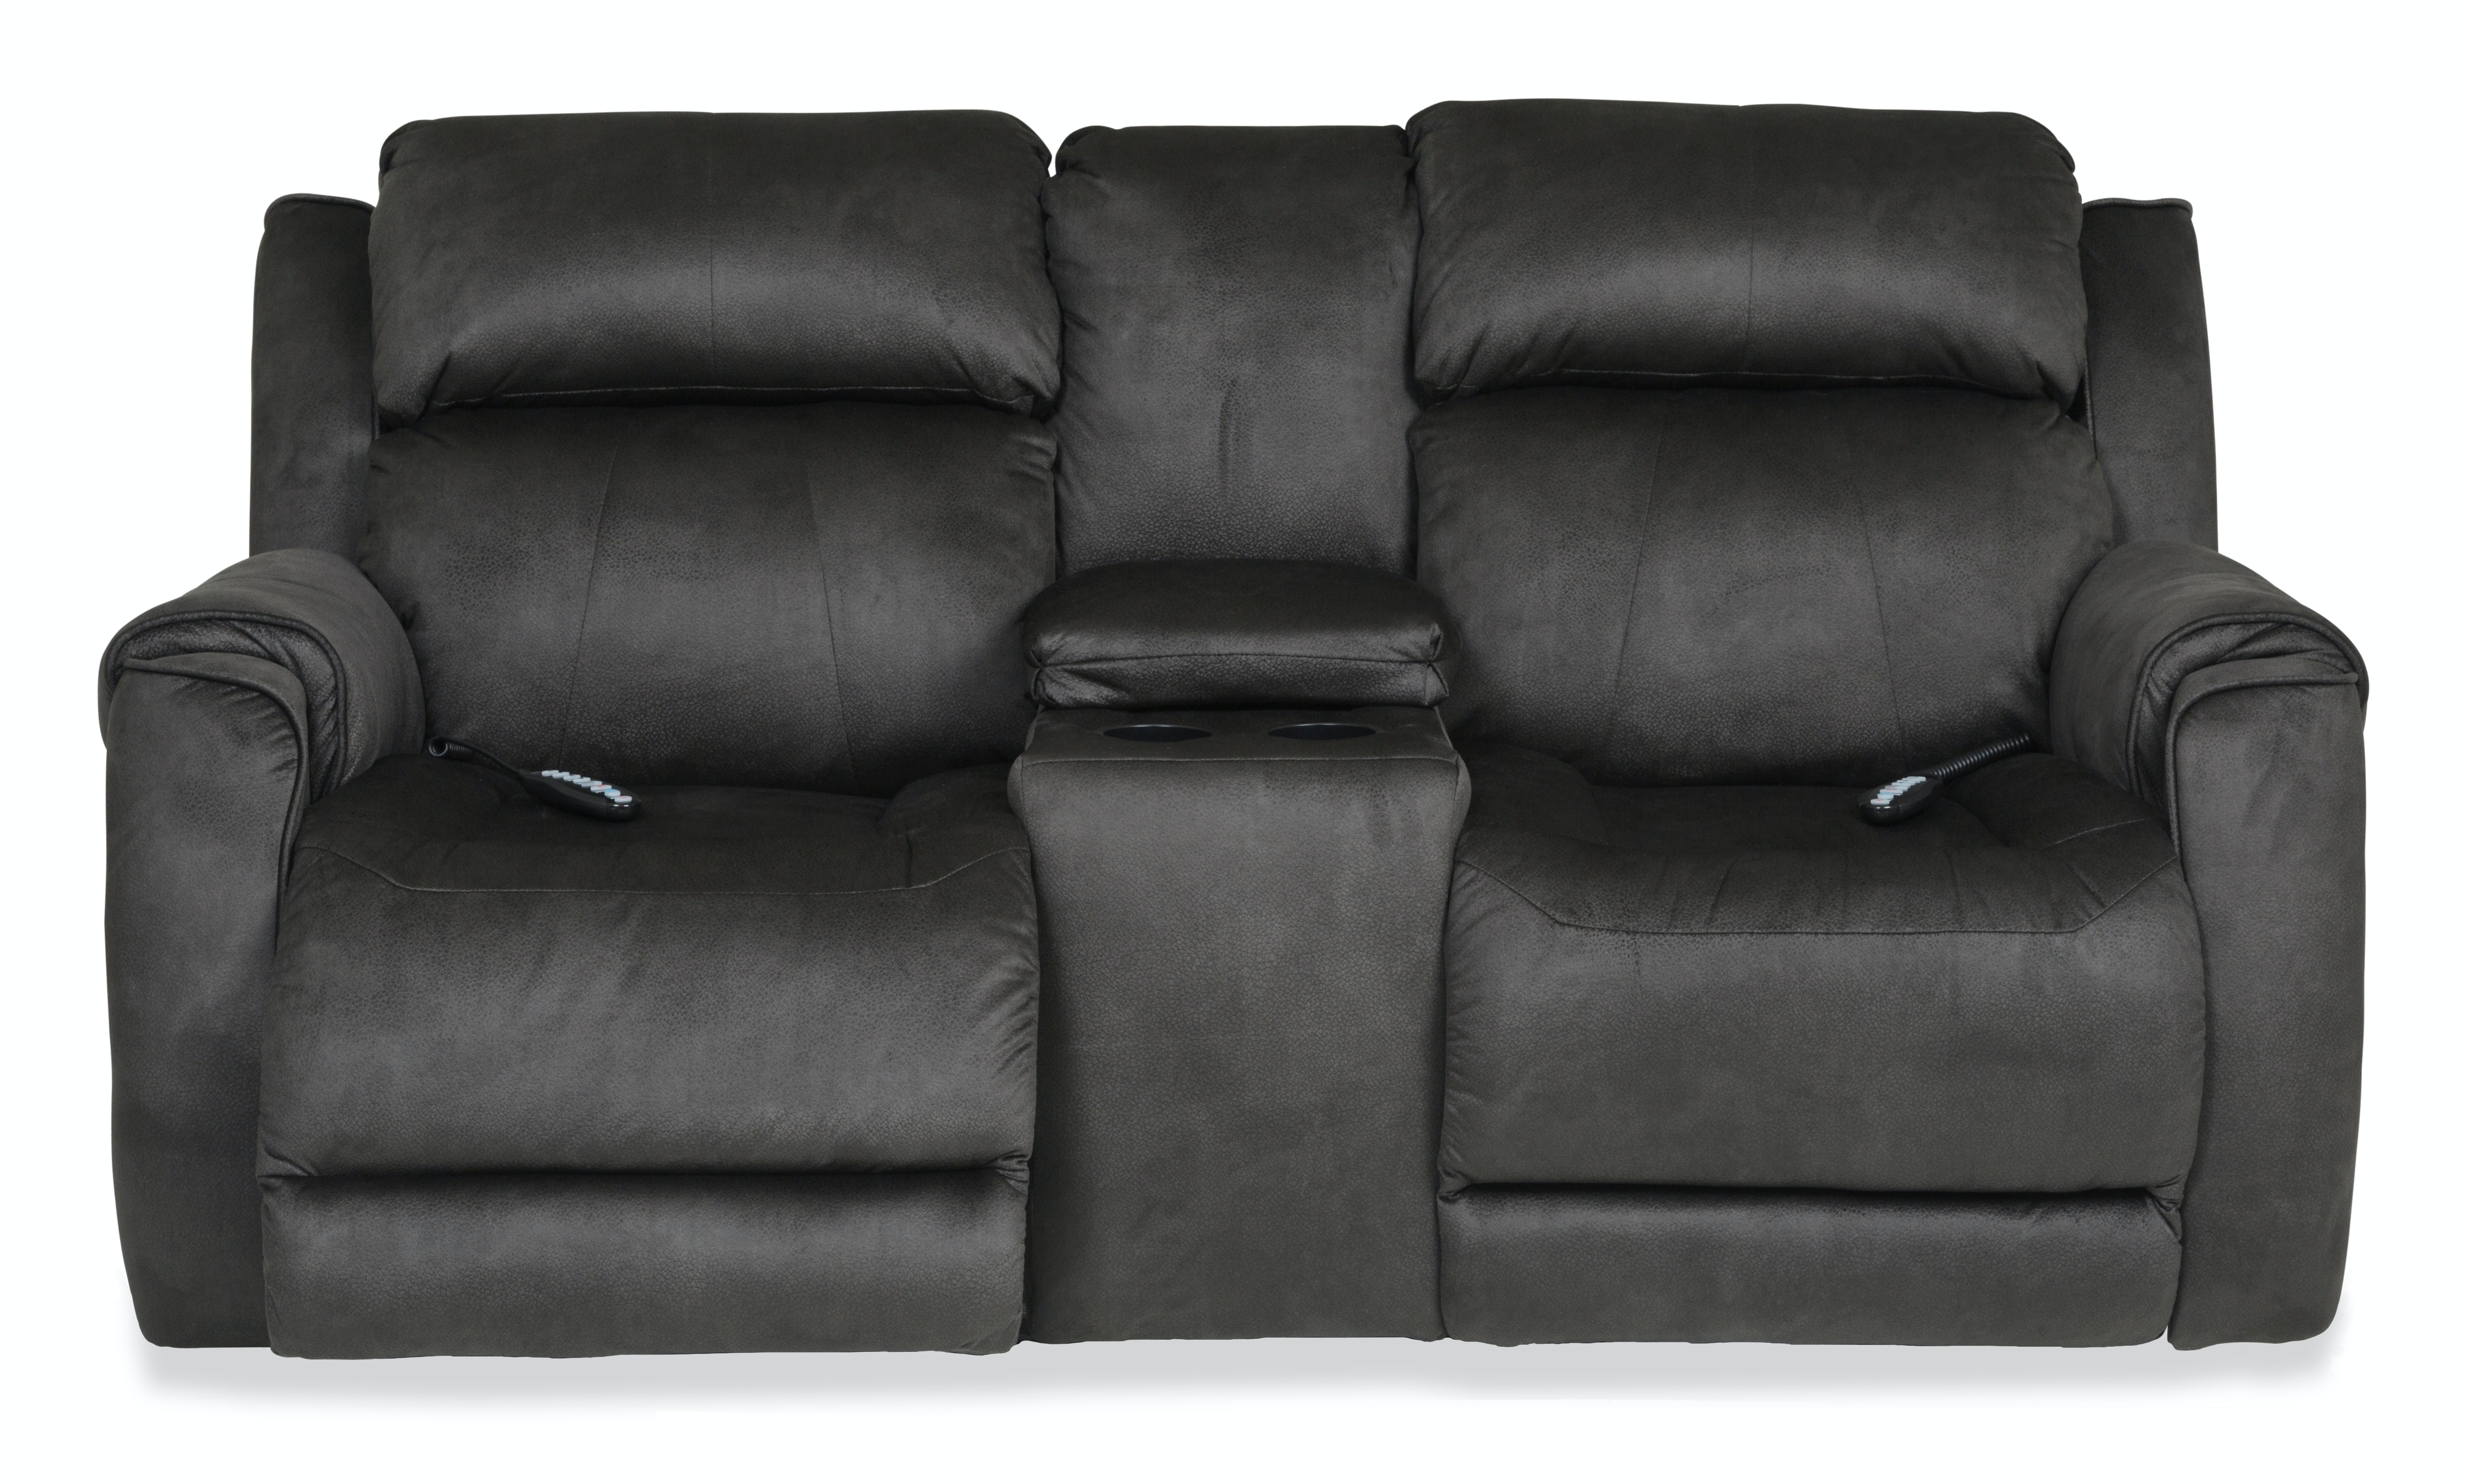 Living Room Safe Bet Power Reclining Loveseat With Heat Massage